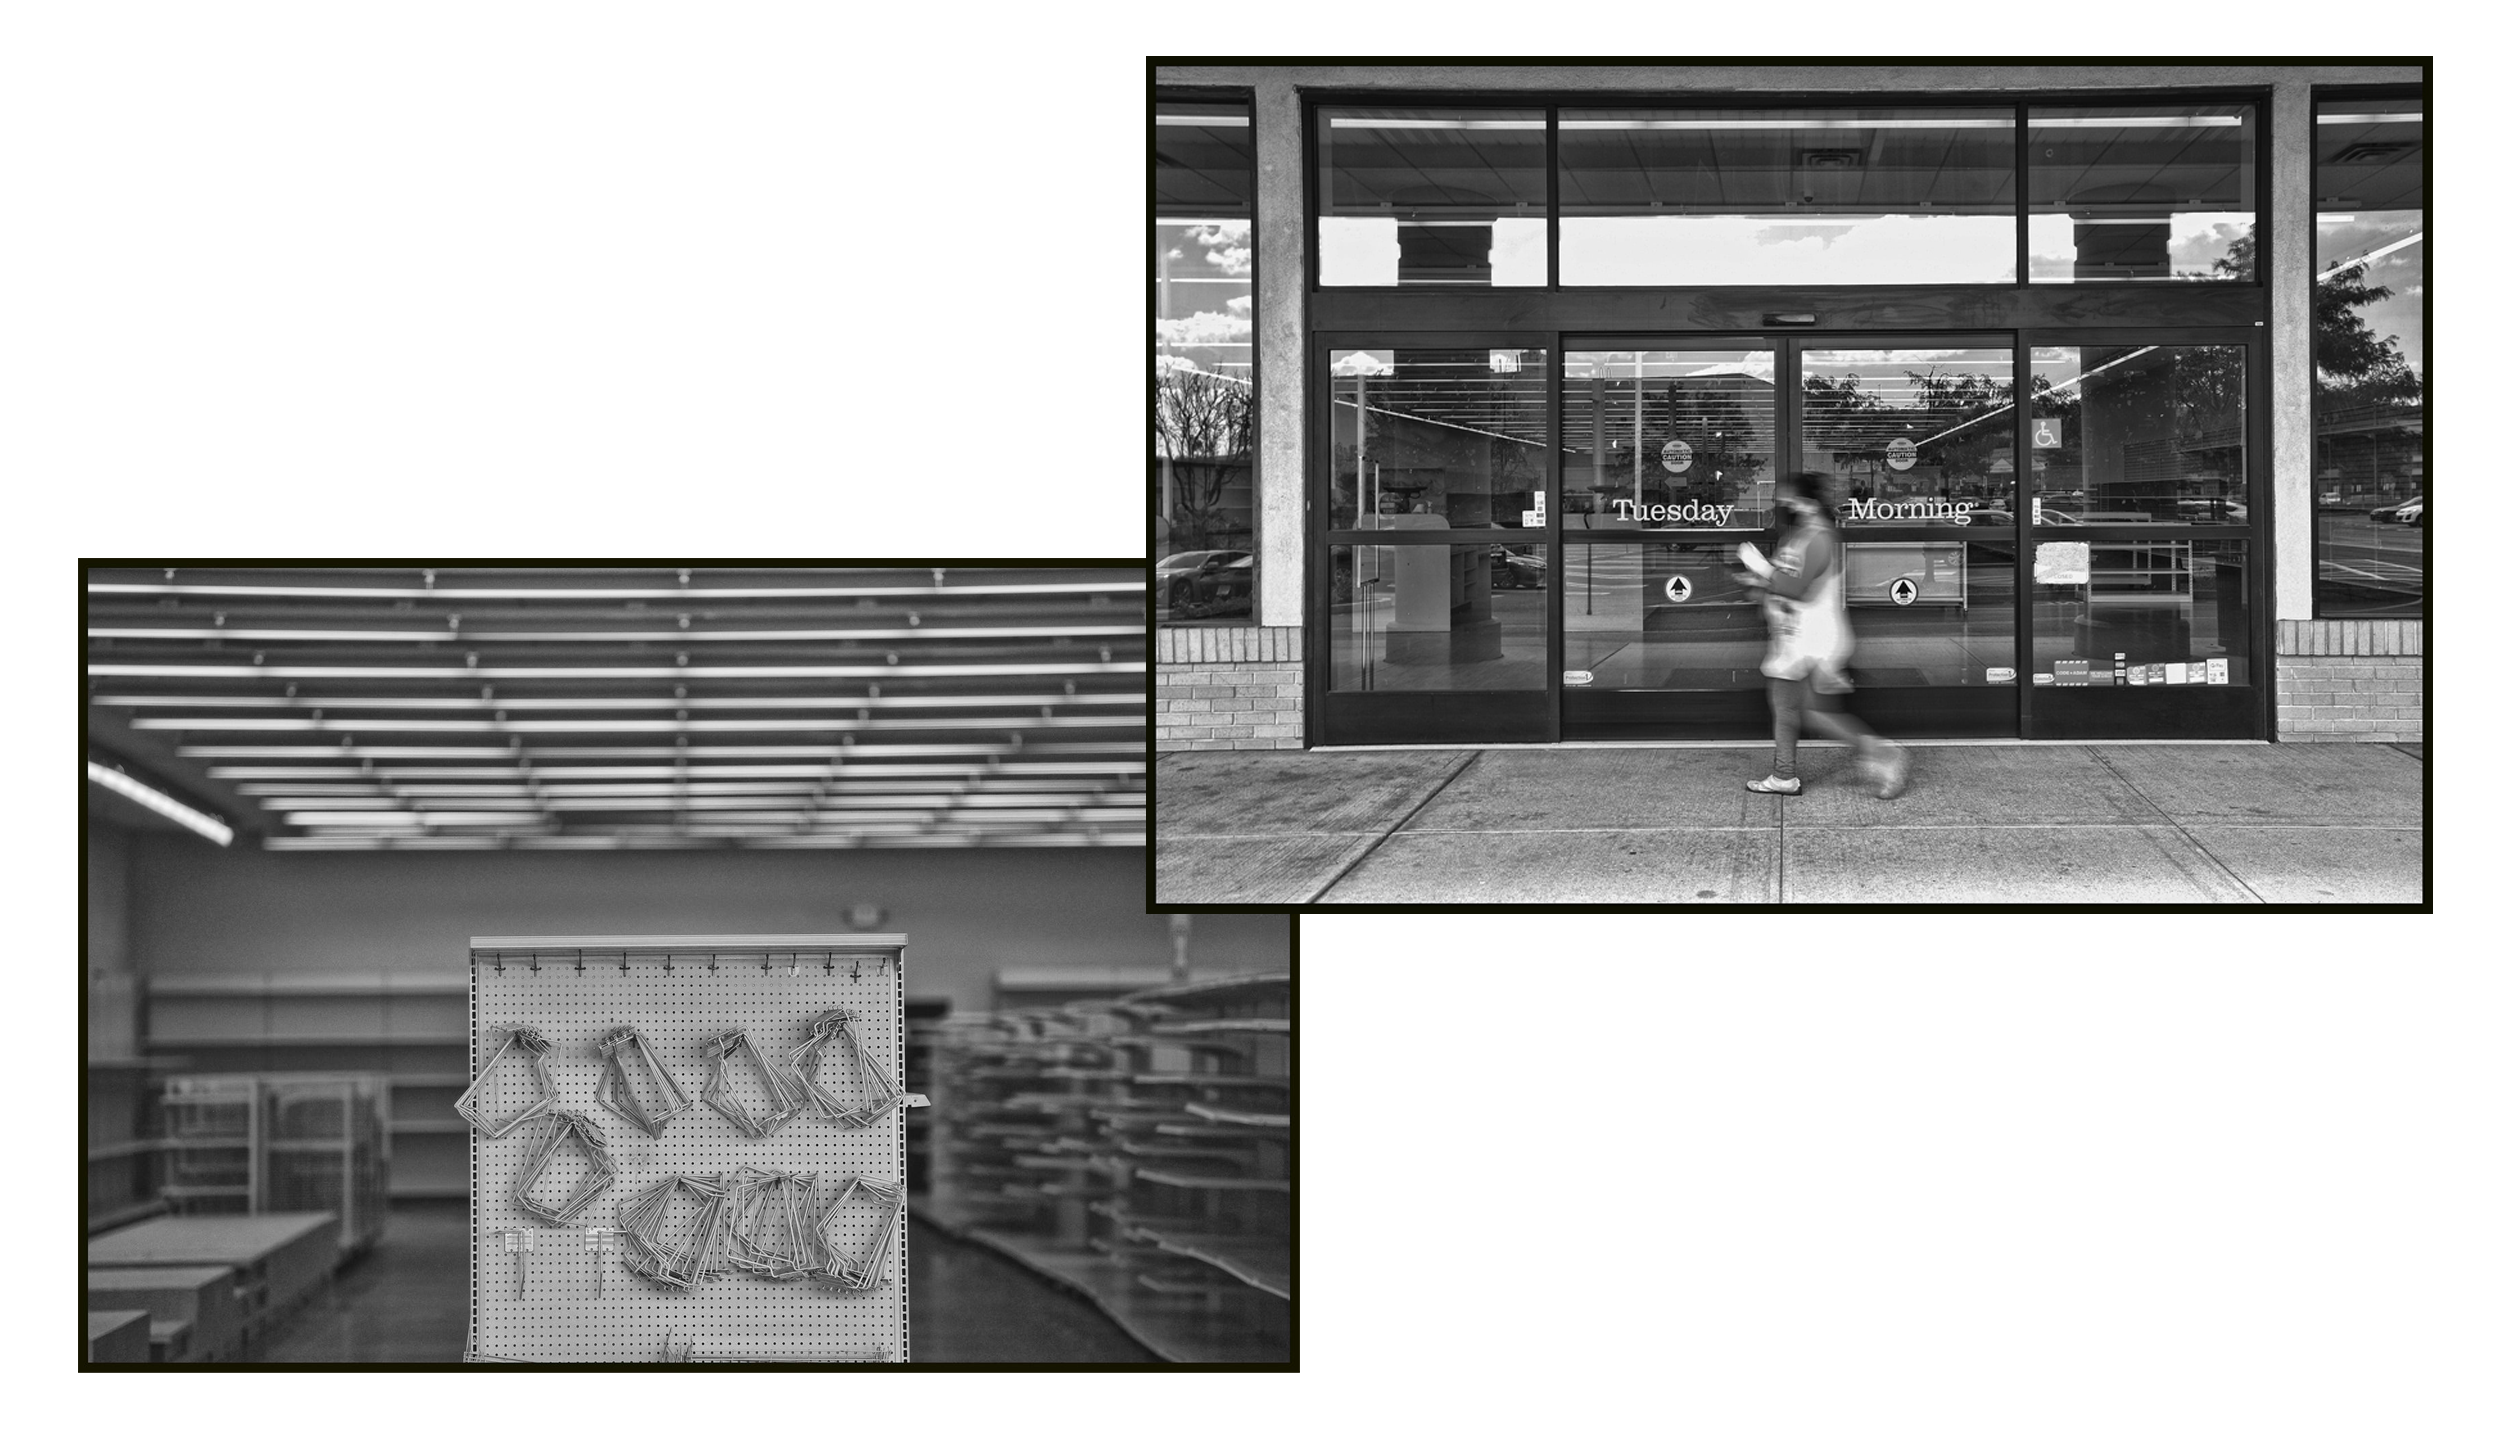 A shopper walks past the storefront of Tuesday Morning on Route 4 in Paramus. Its shelves are empty.